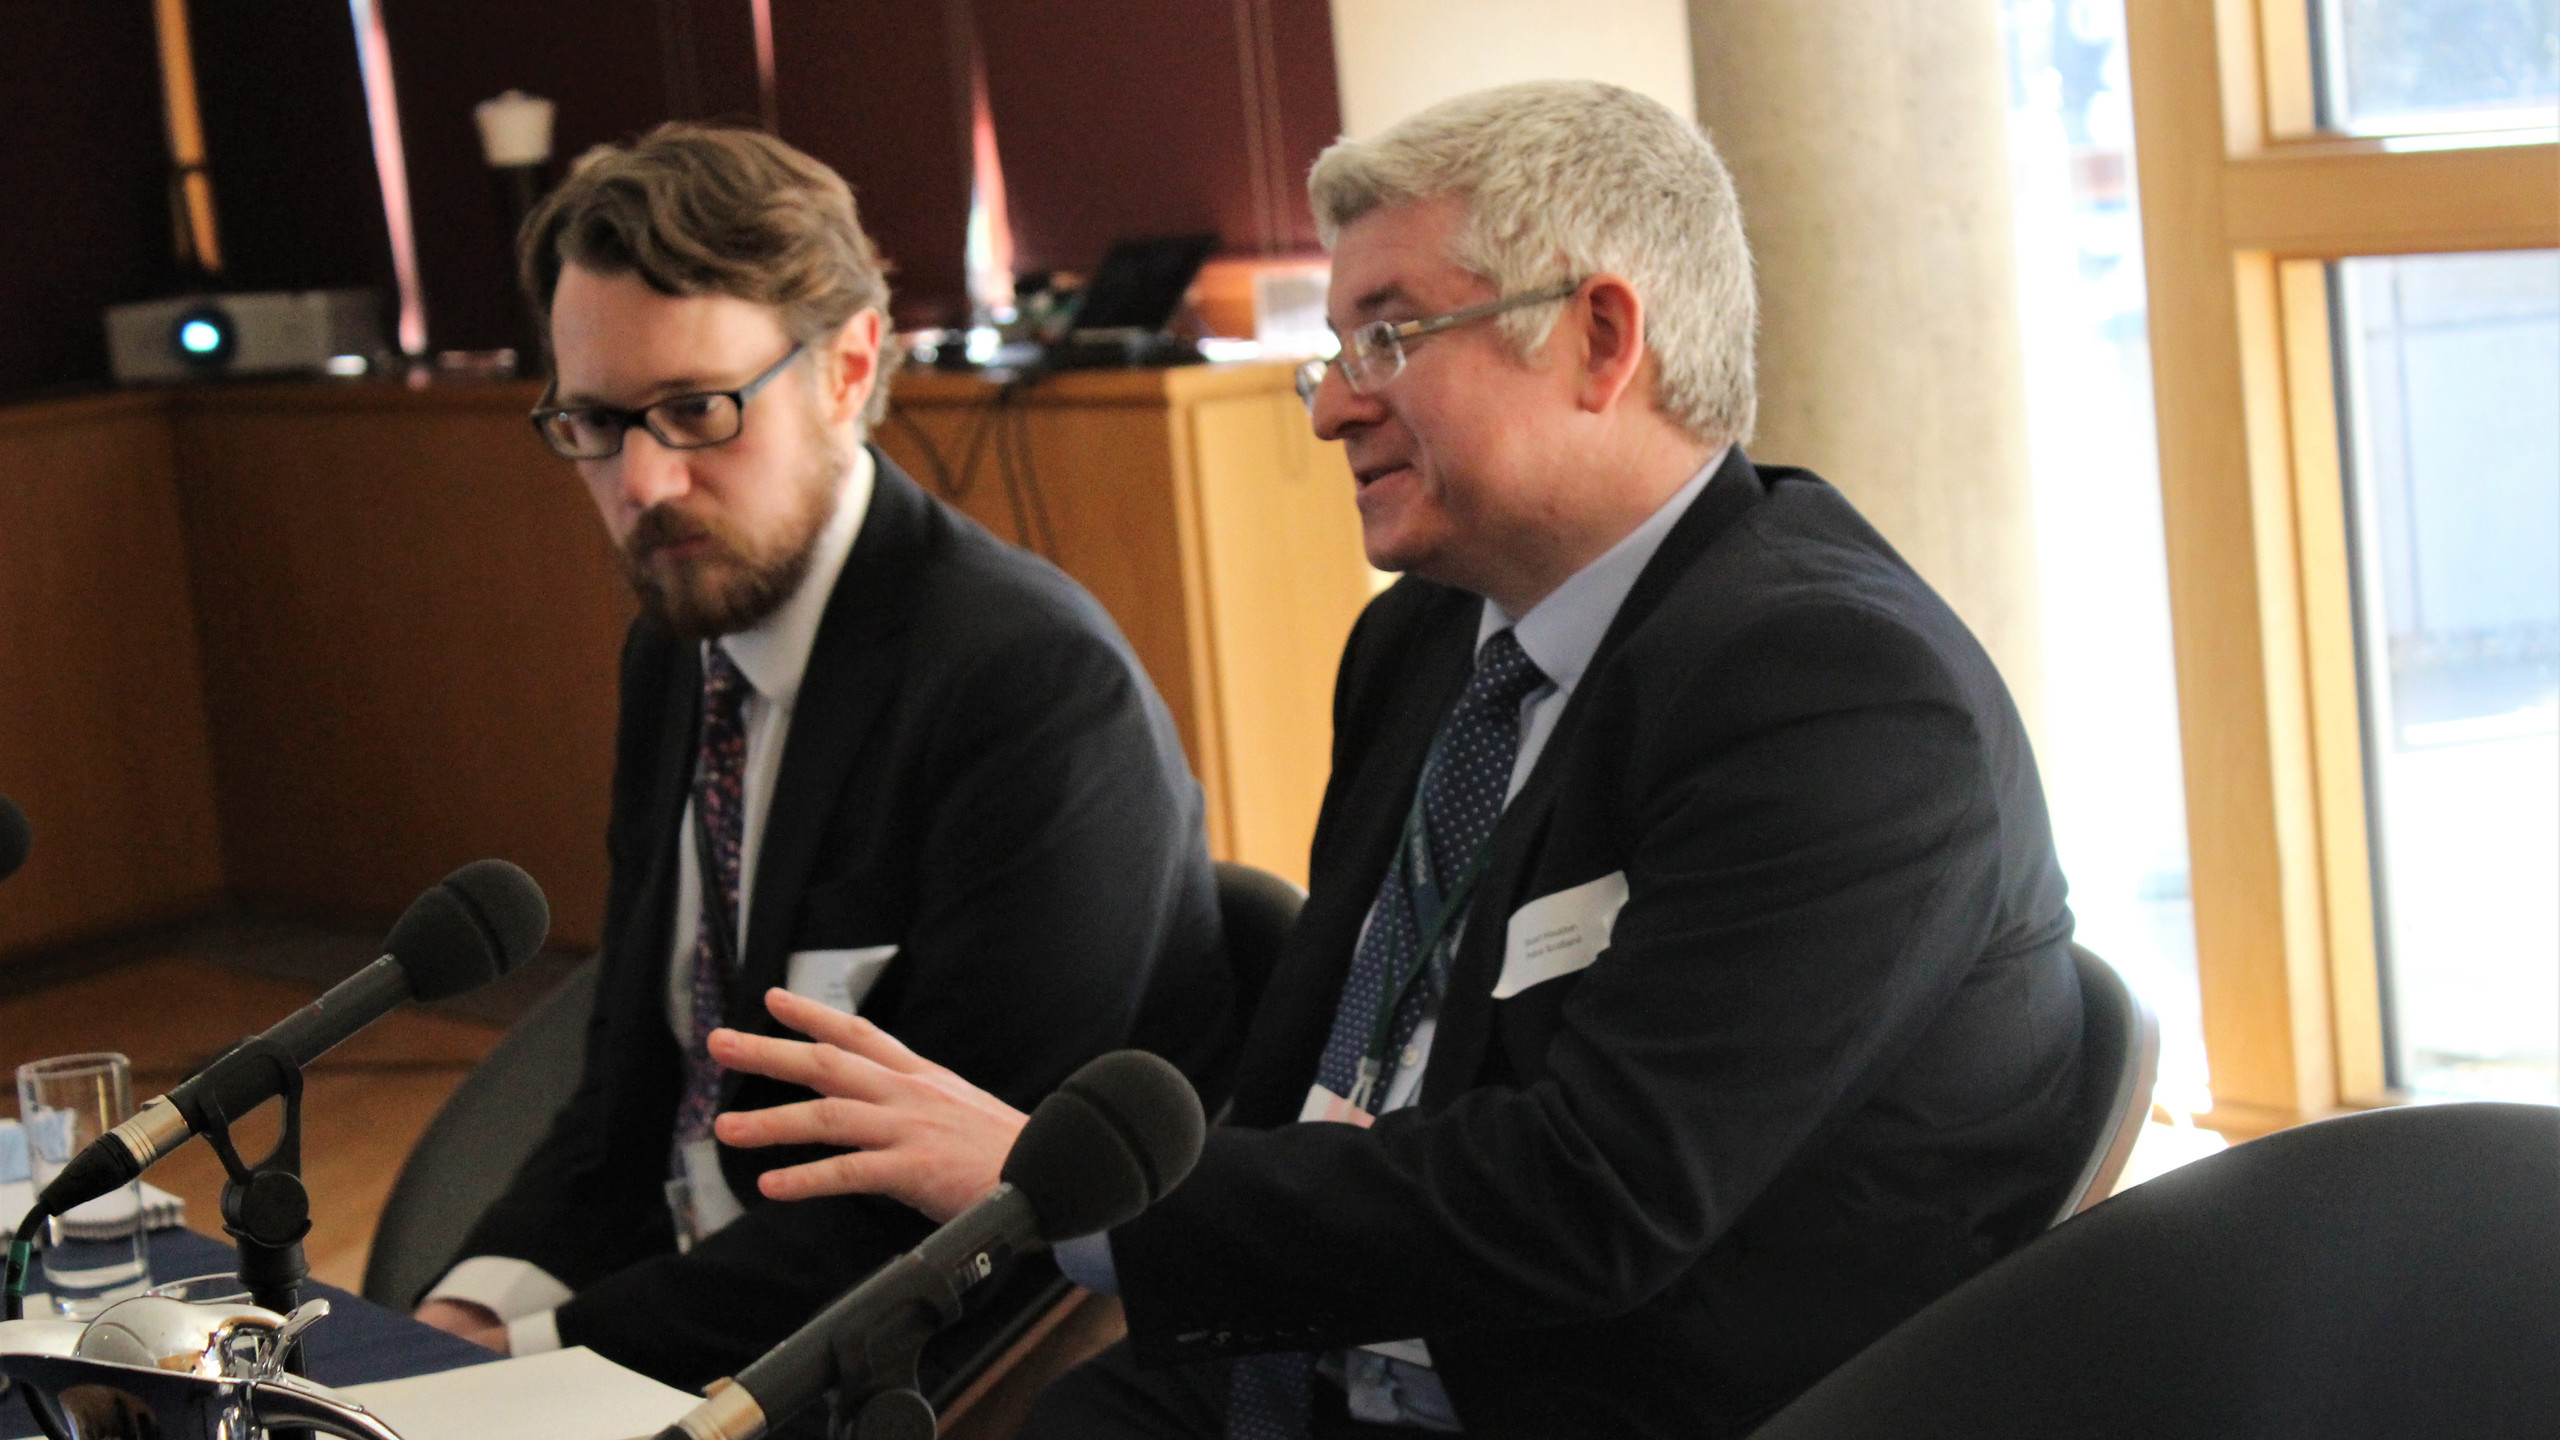 Peter Hope-Jones and Stuart Houston answer questions from the audience.